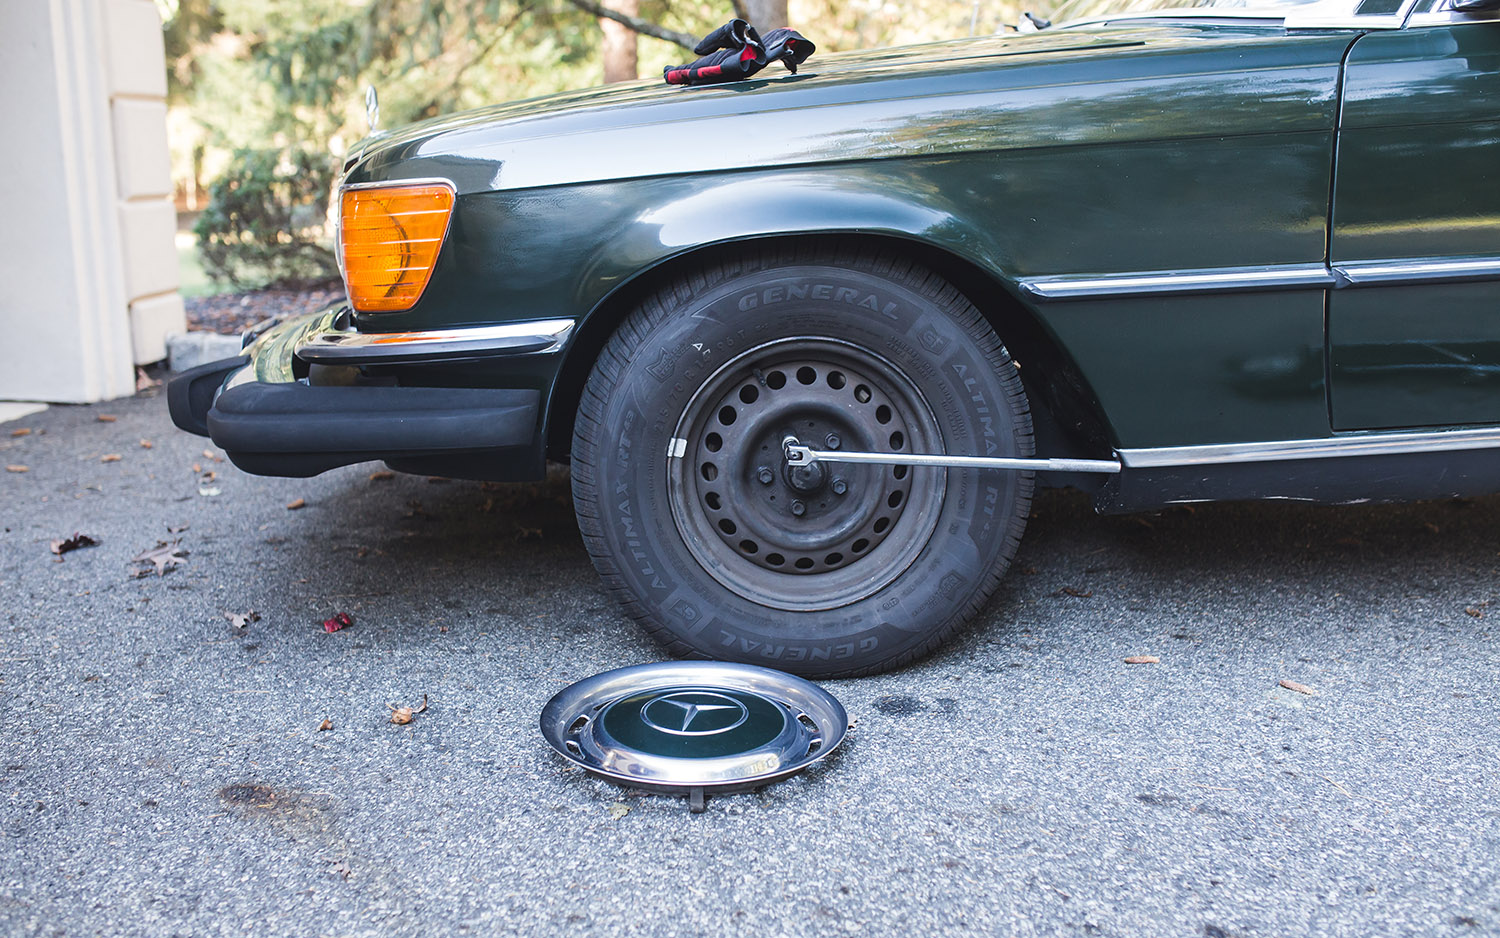 How to jack up a car | Steps, materials, safety, pictures | Page 2